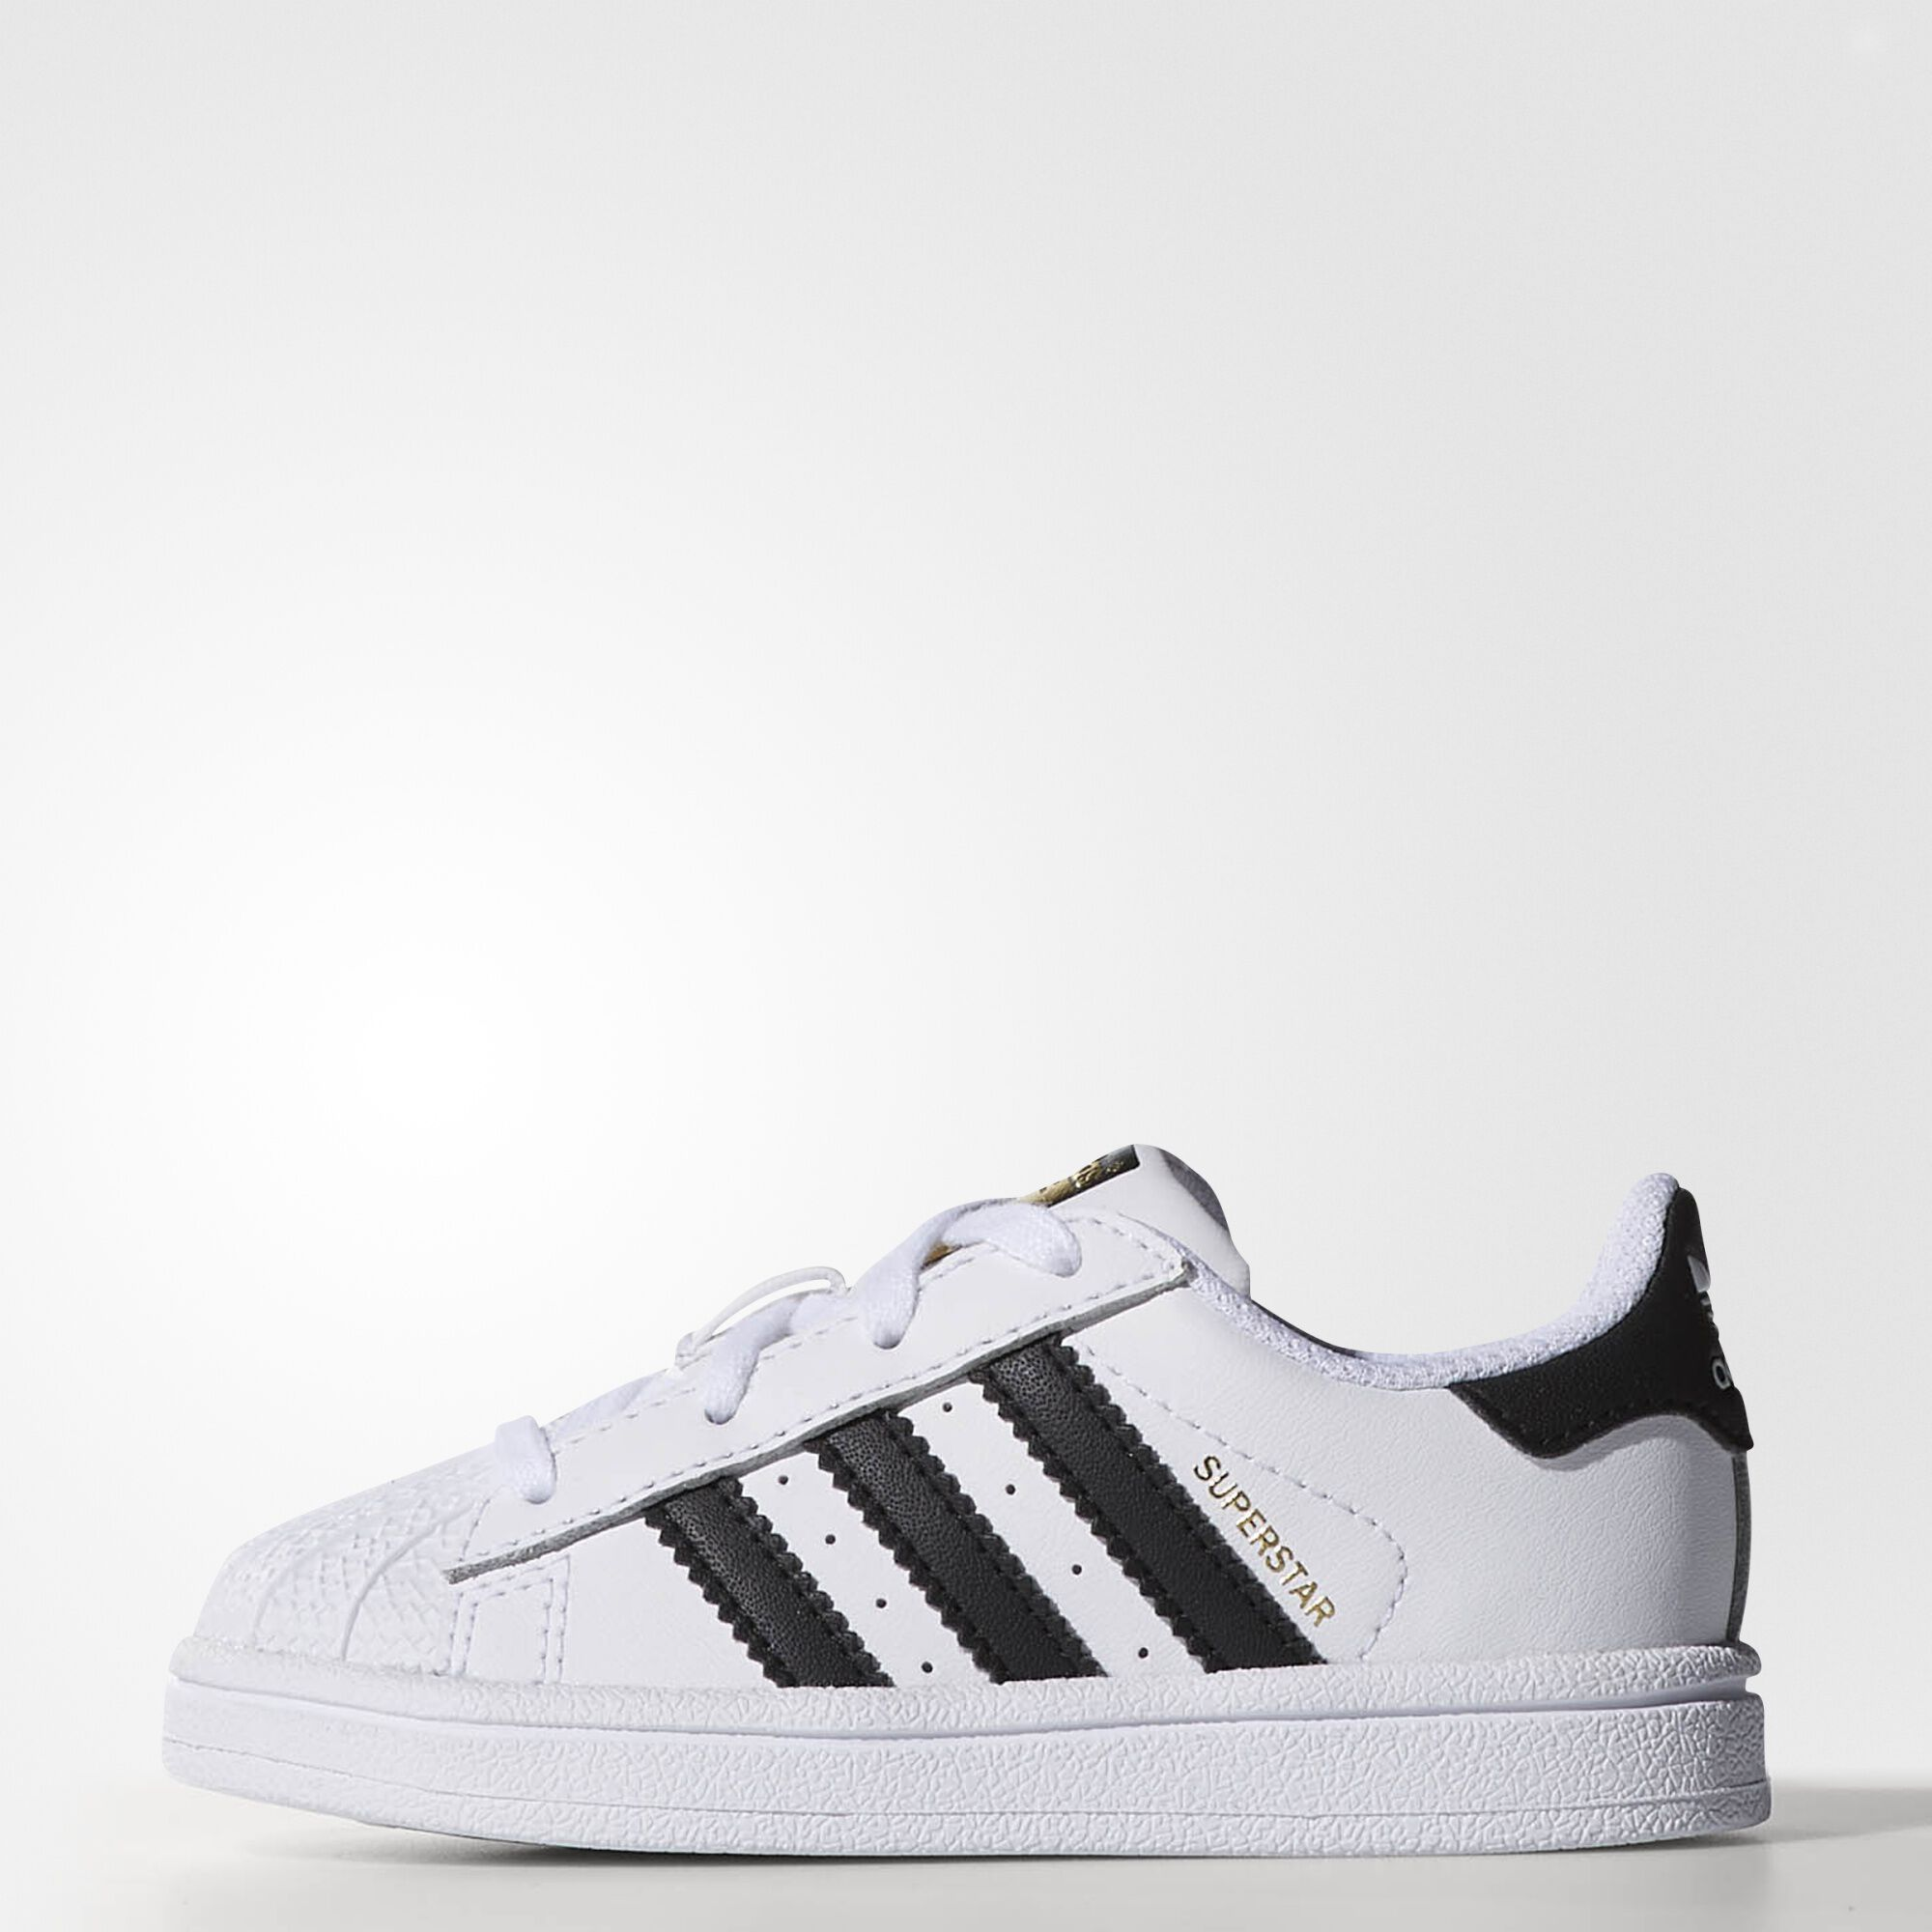 Superstar Adidas Shoes White